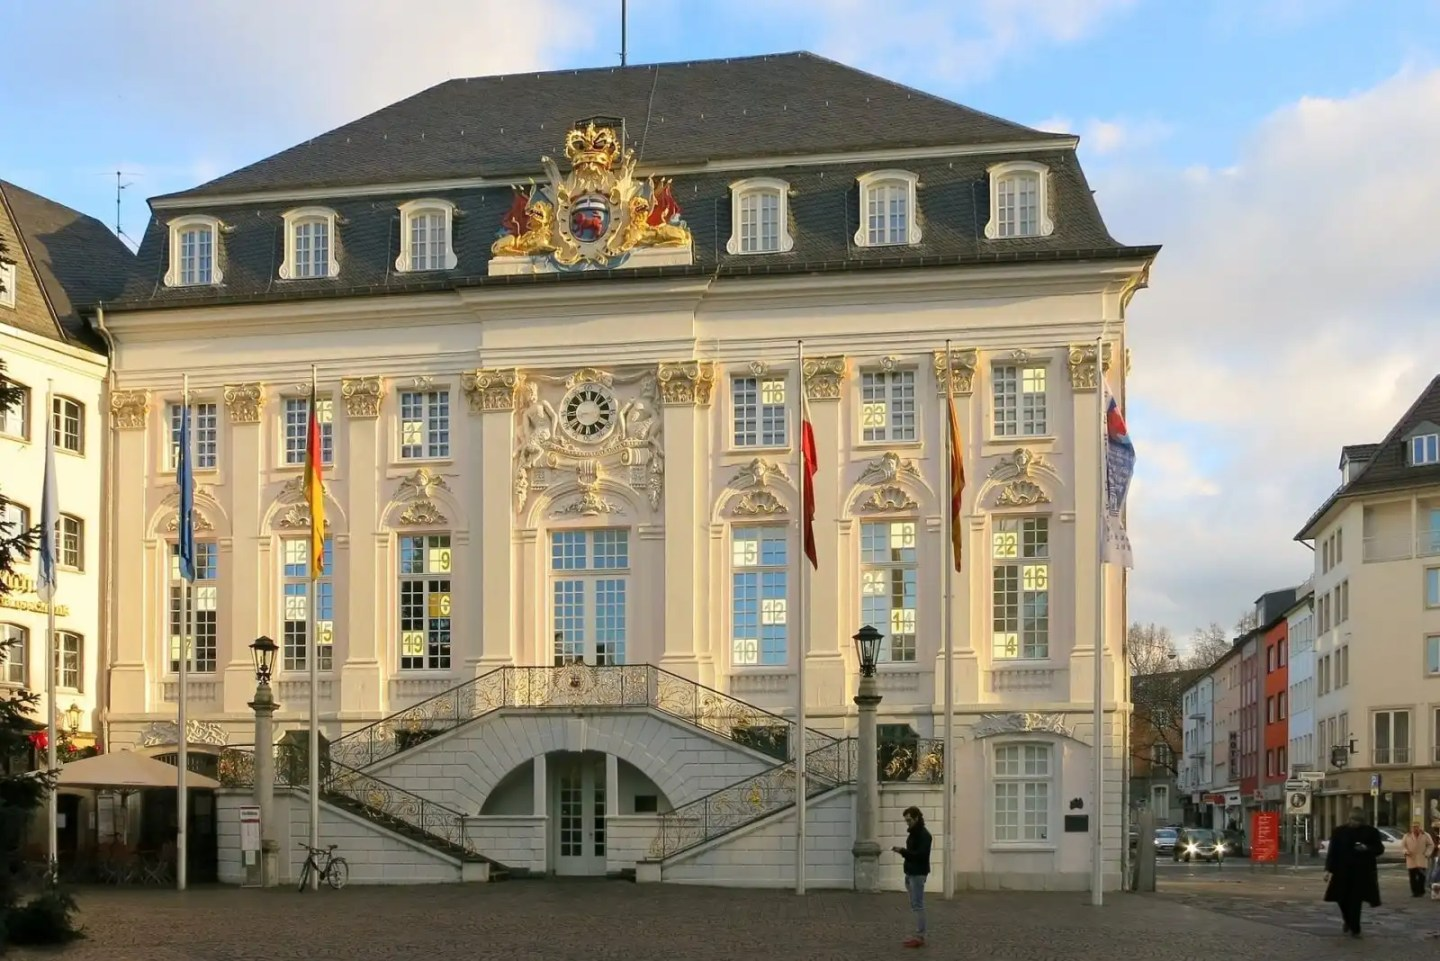 The Altes Rathaus in Bonn, Germany